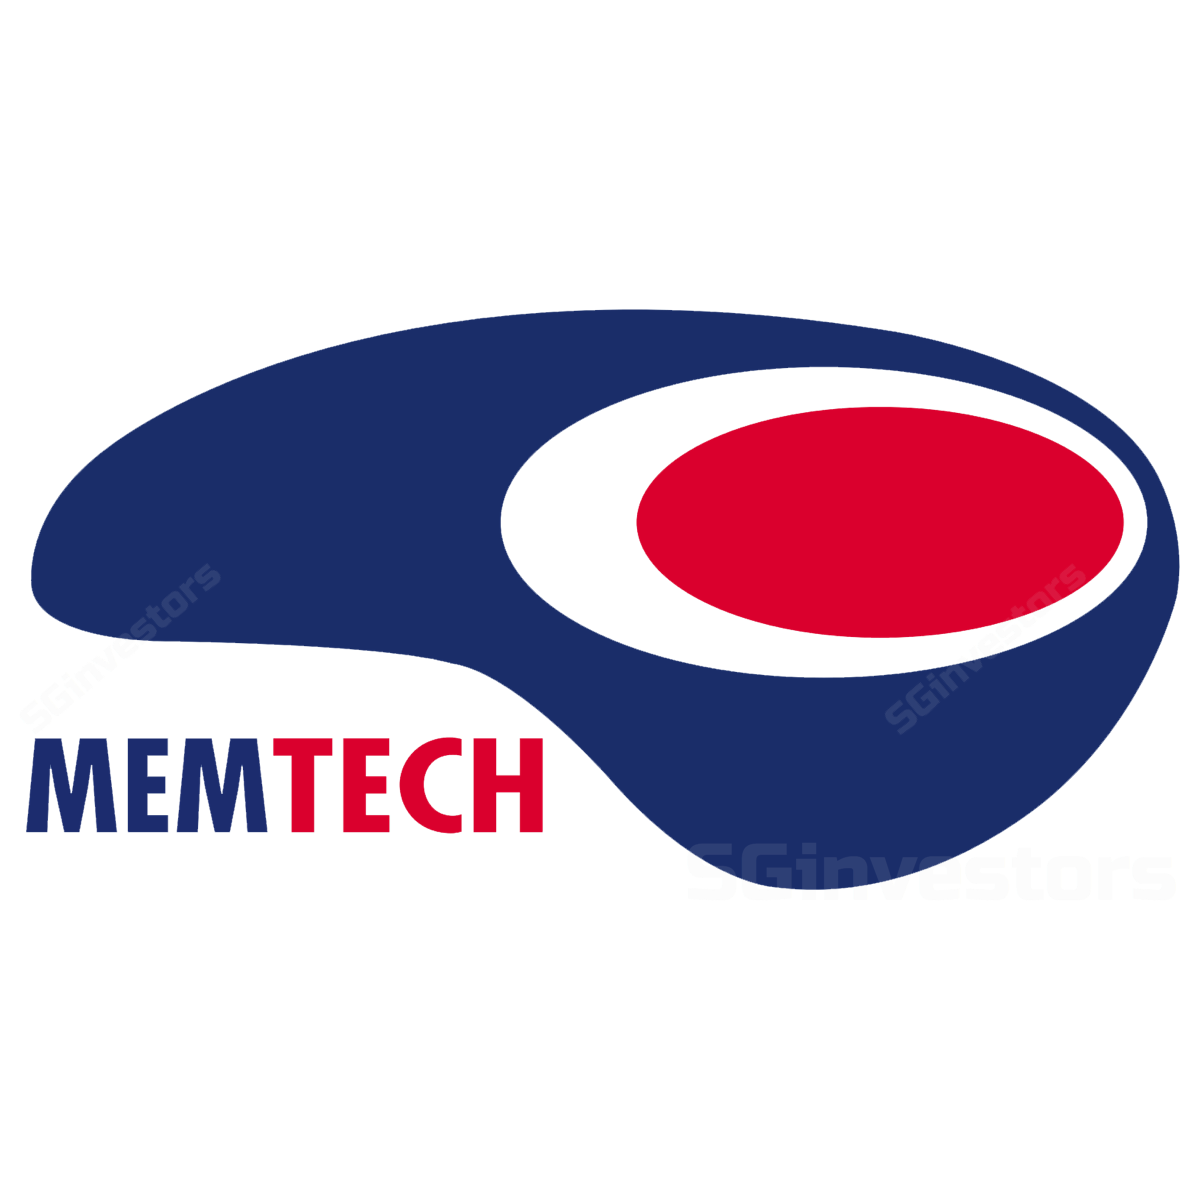 Memtech International - CIMB Research 2017-07-04: All Stars Aligned